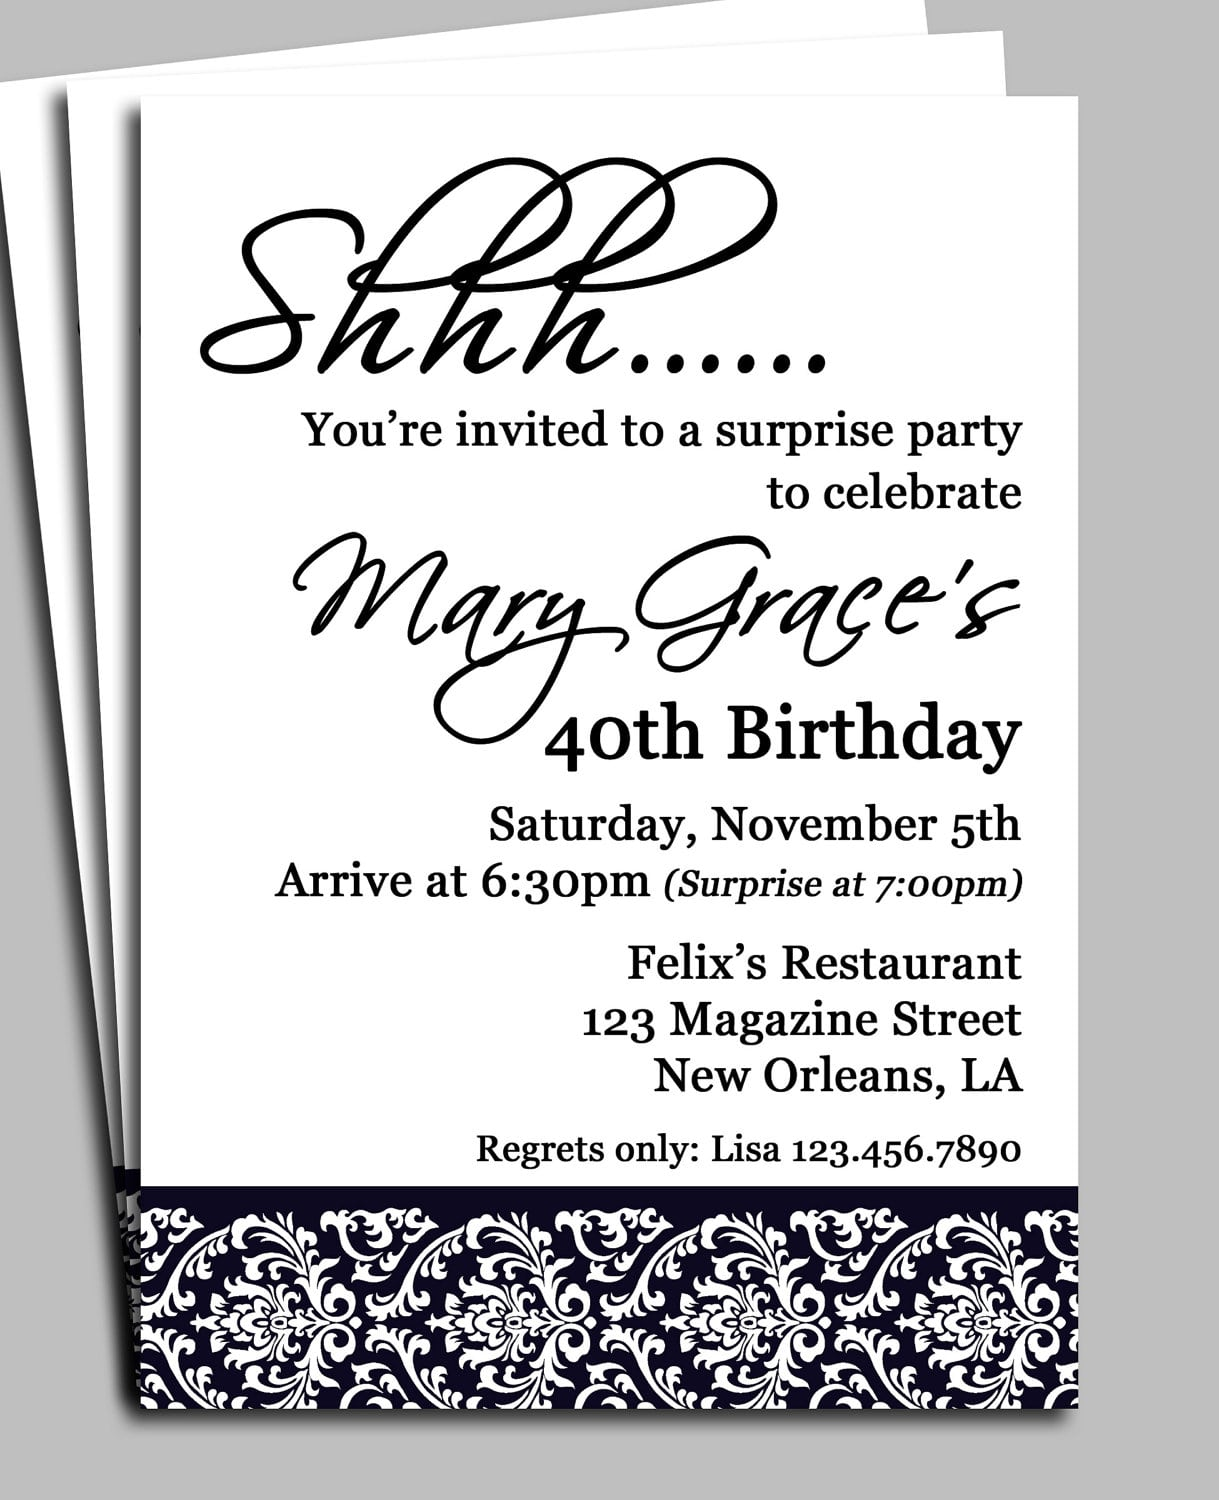 Party Invitations  Stunning Surprise Party Invitations Designs